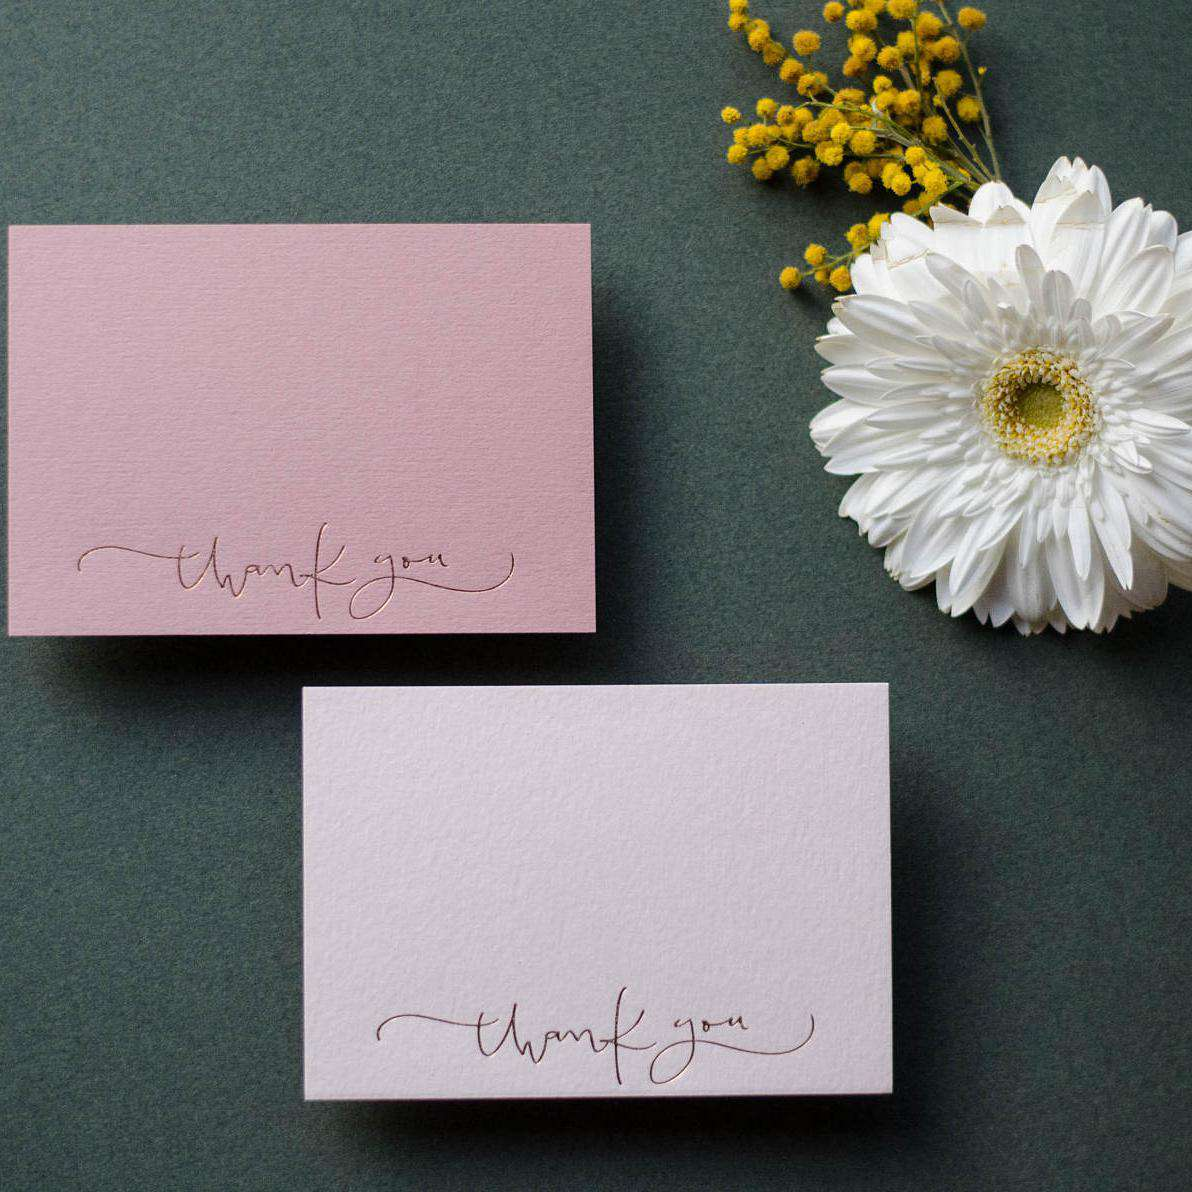 Writing Thank You Notes For Wedding Gifts: How To Write A Thank-You Note For A Gift You Returned